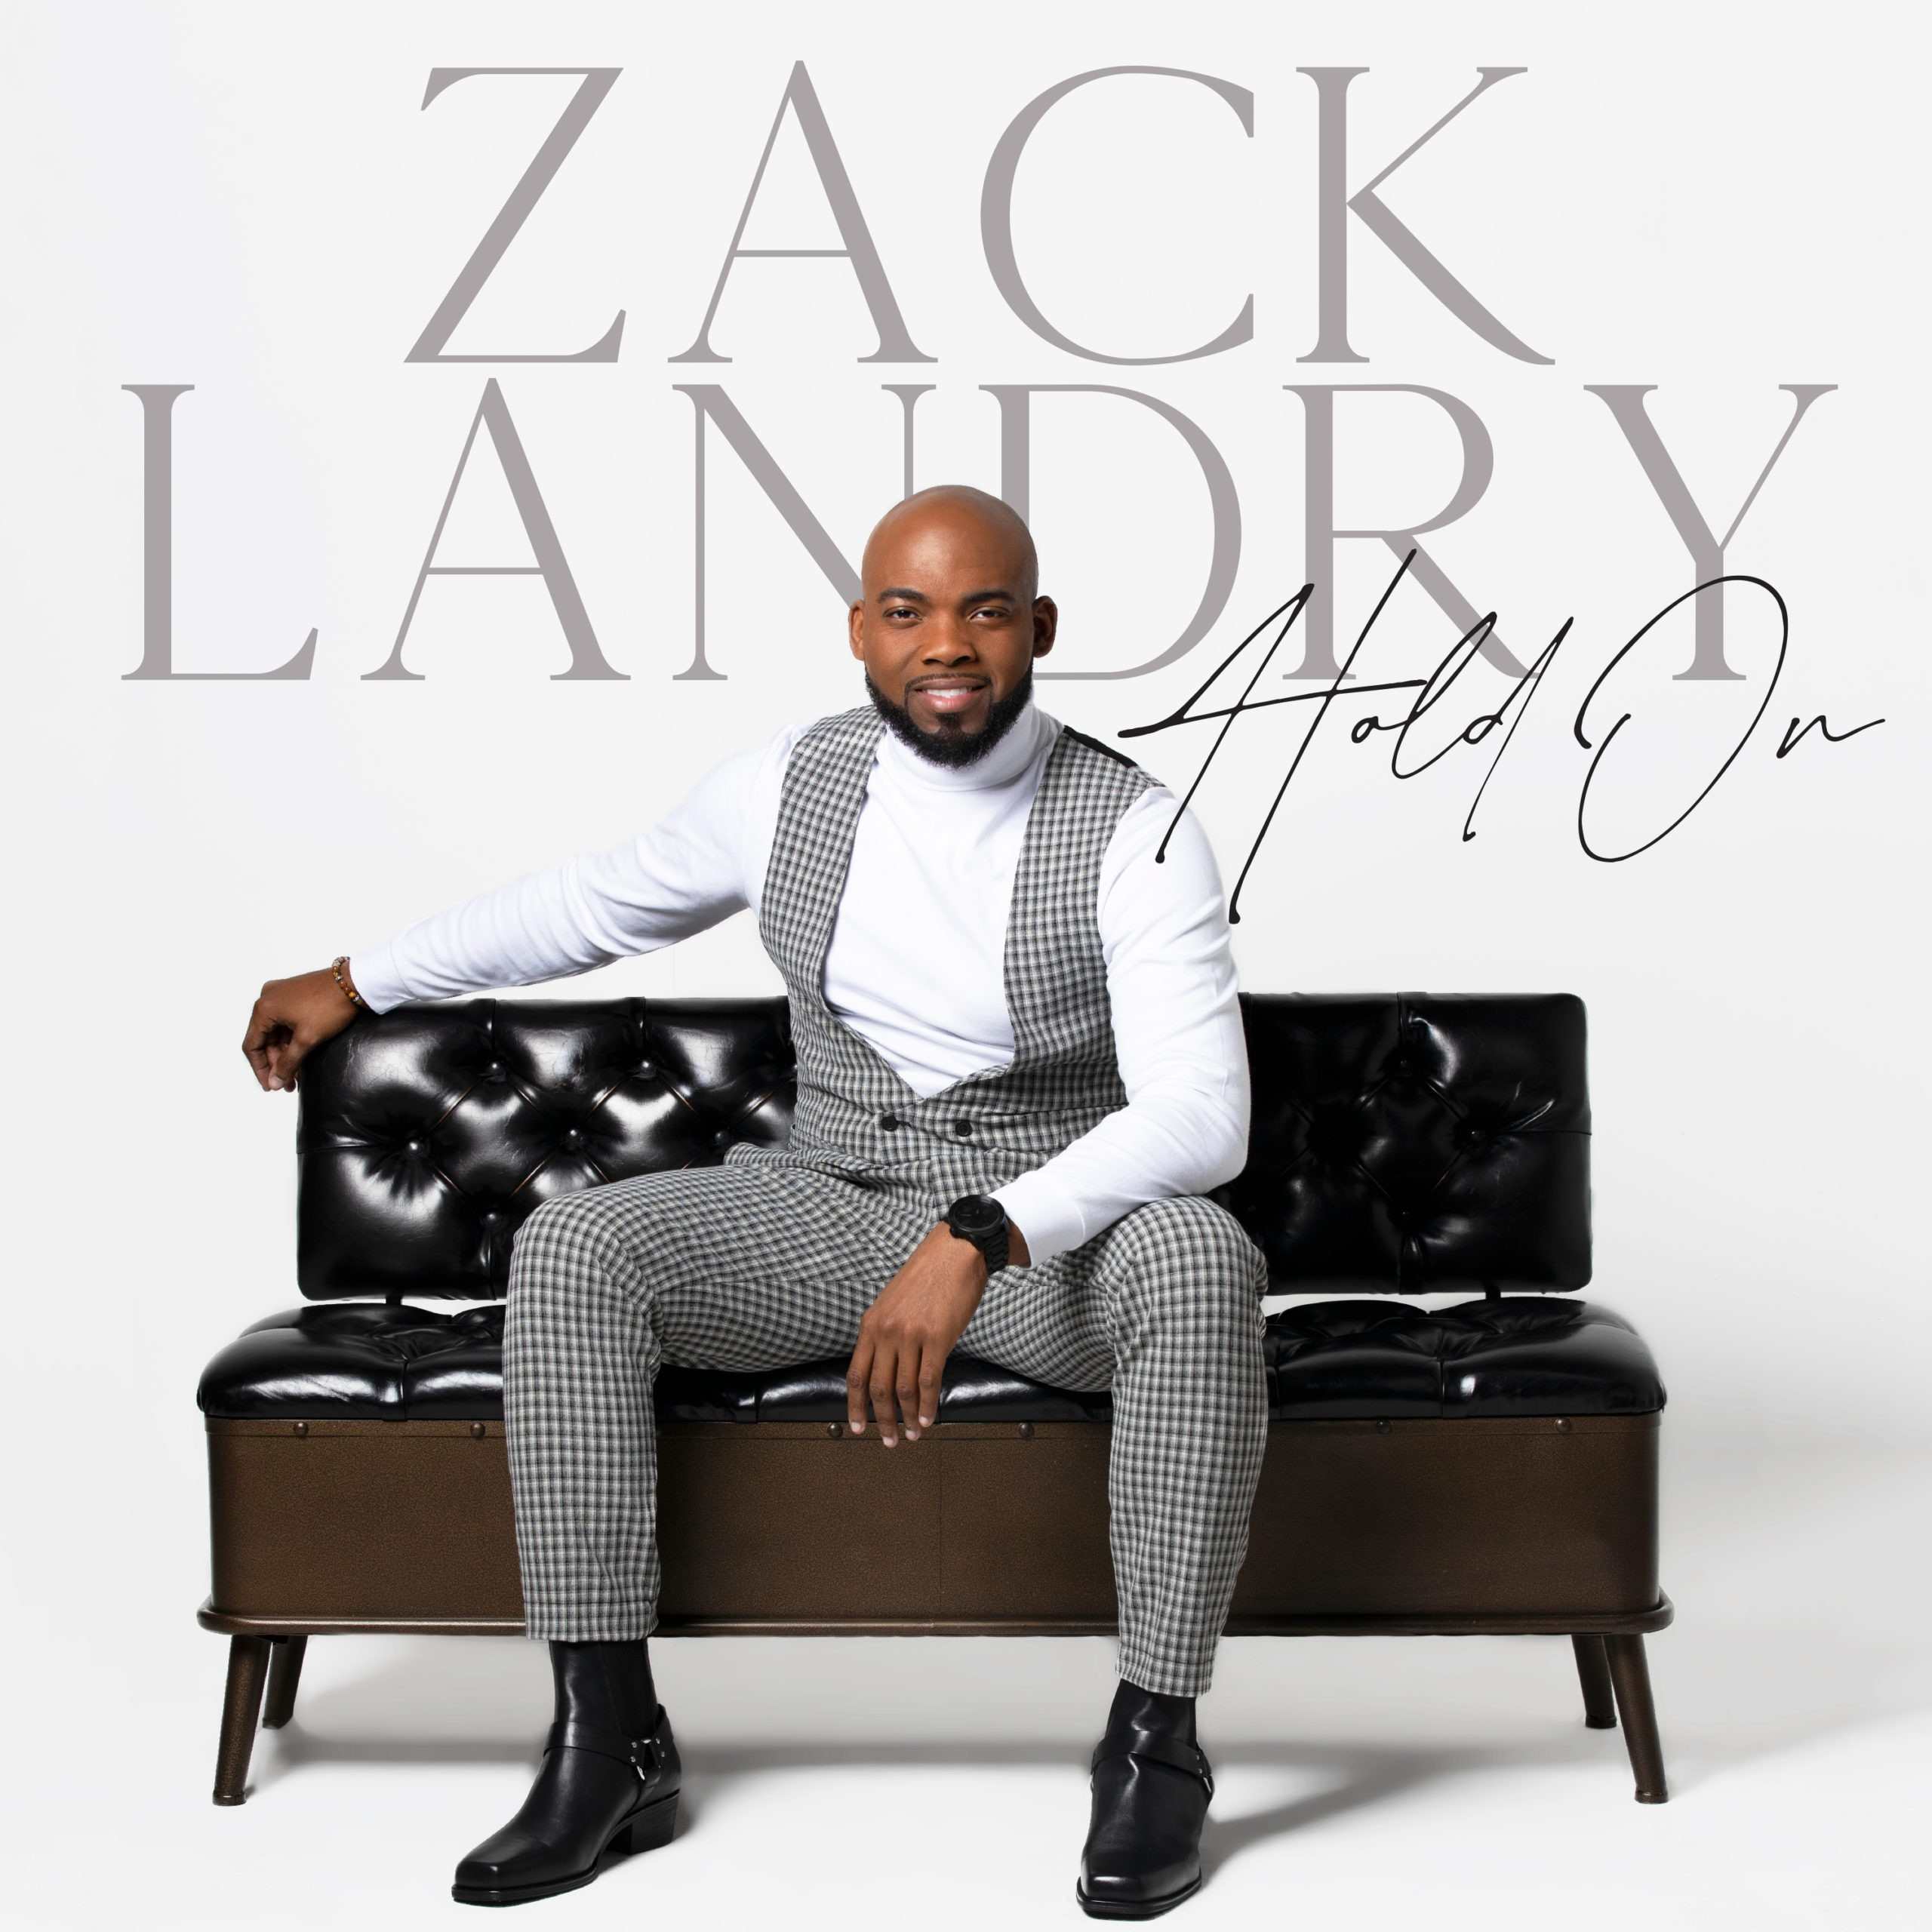 AWARD-WINNING ARTIST ZACK LANDRY RELEASES NEW SINGLE